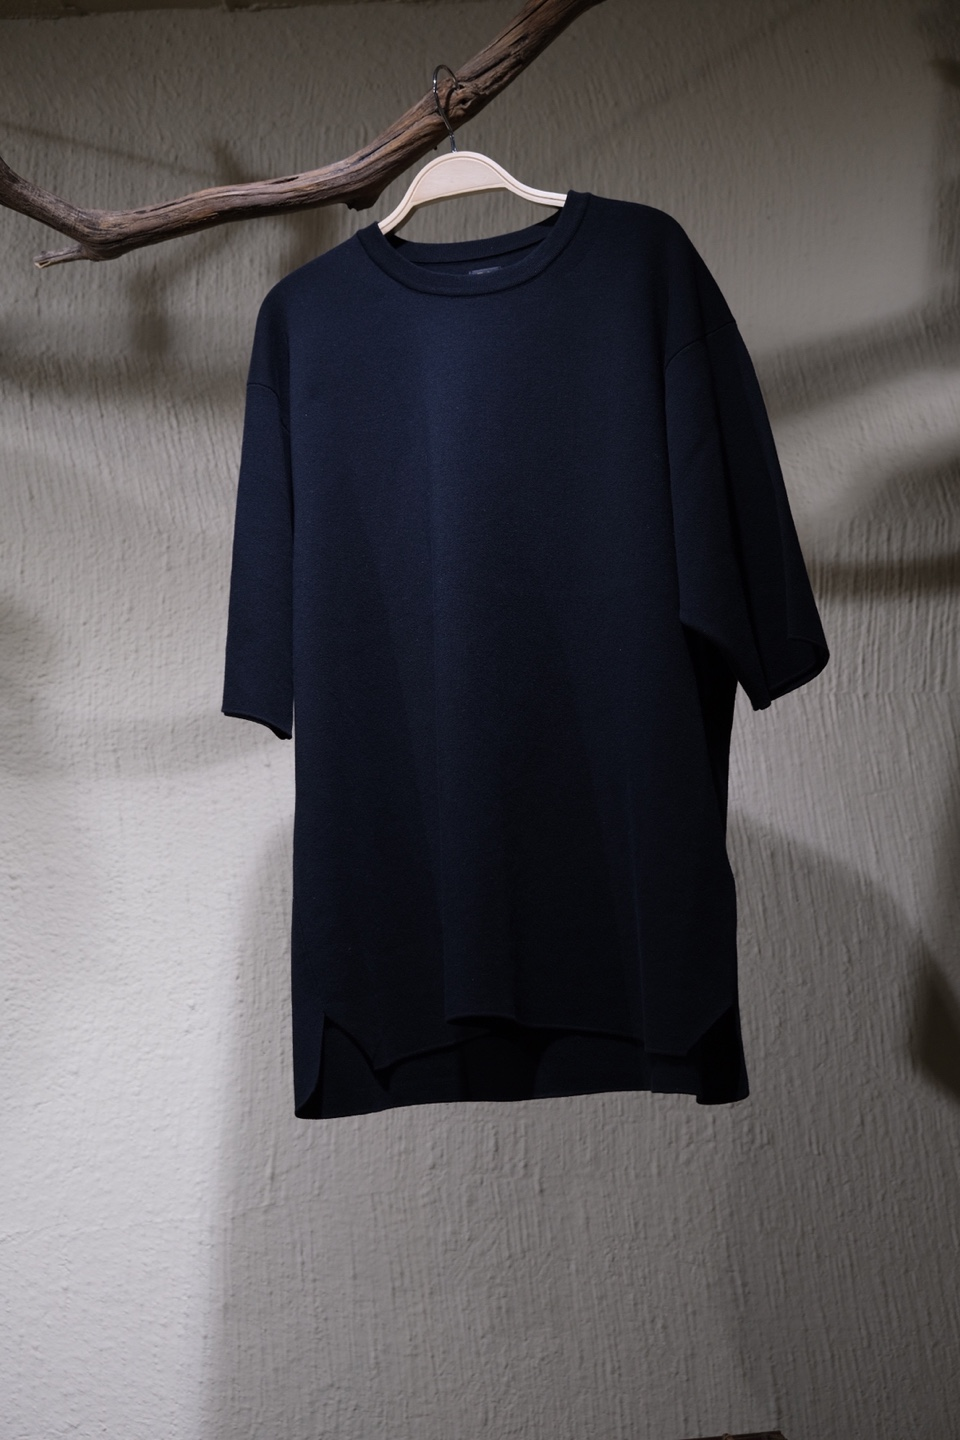 바토너 Batoner 32G Smooth T shirt - Black